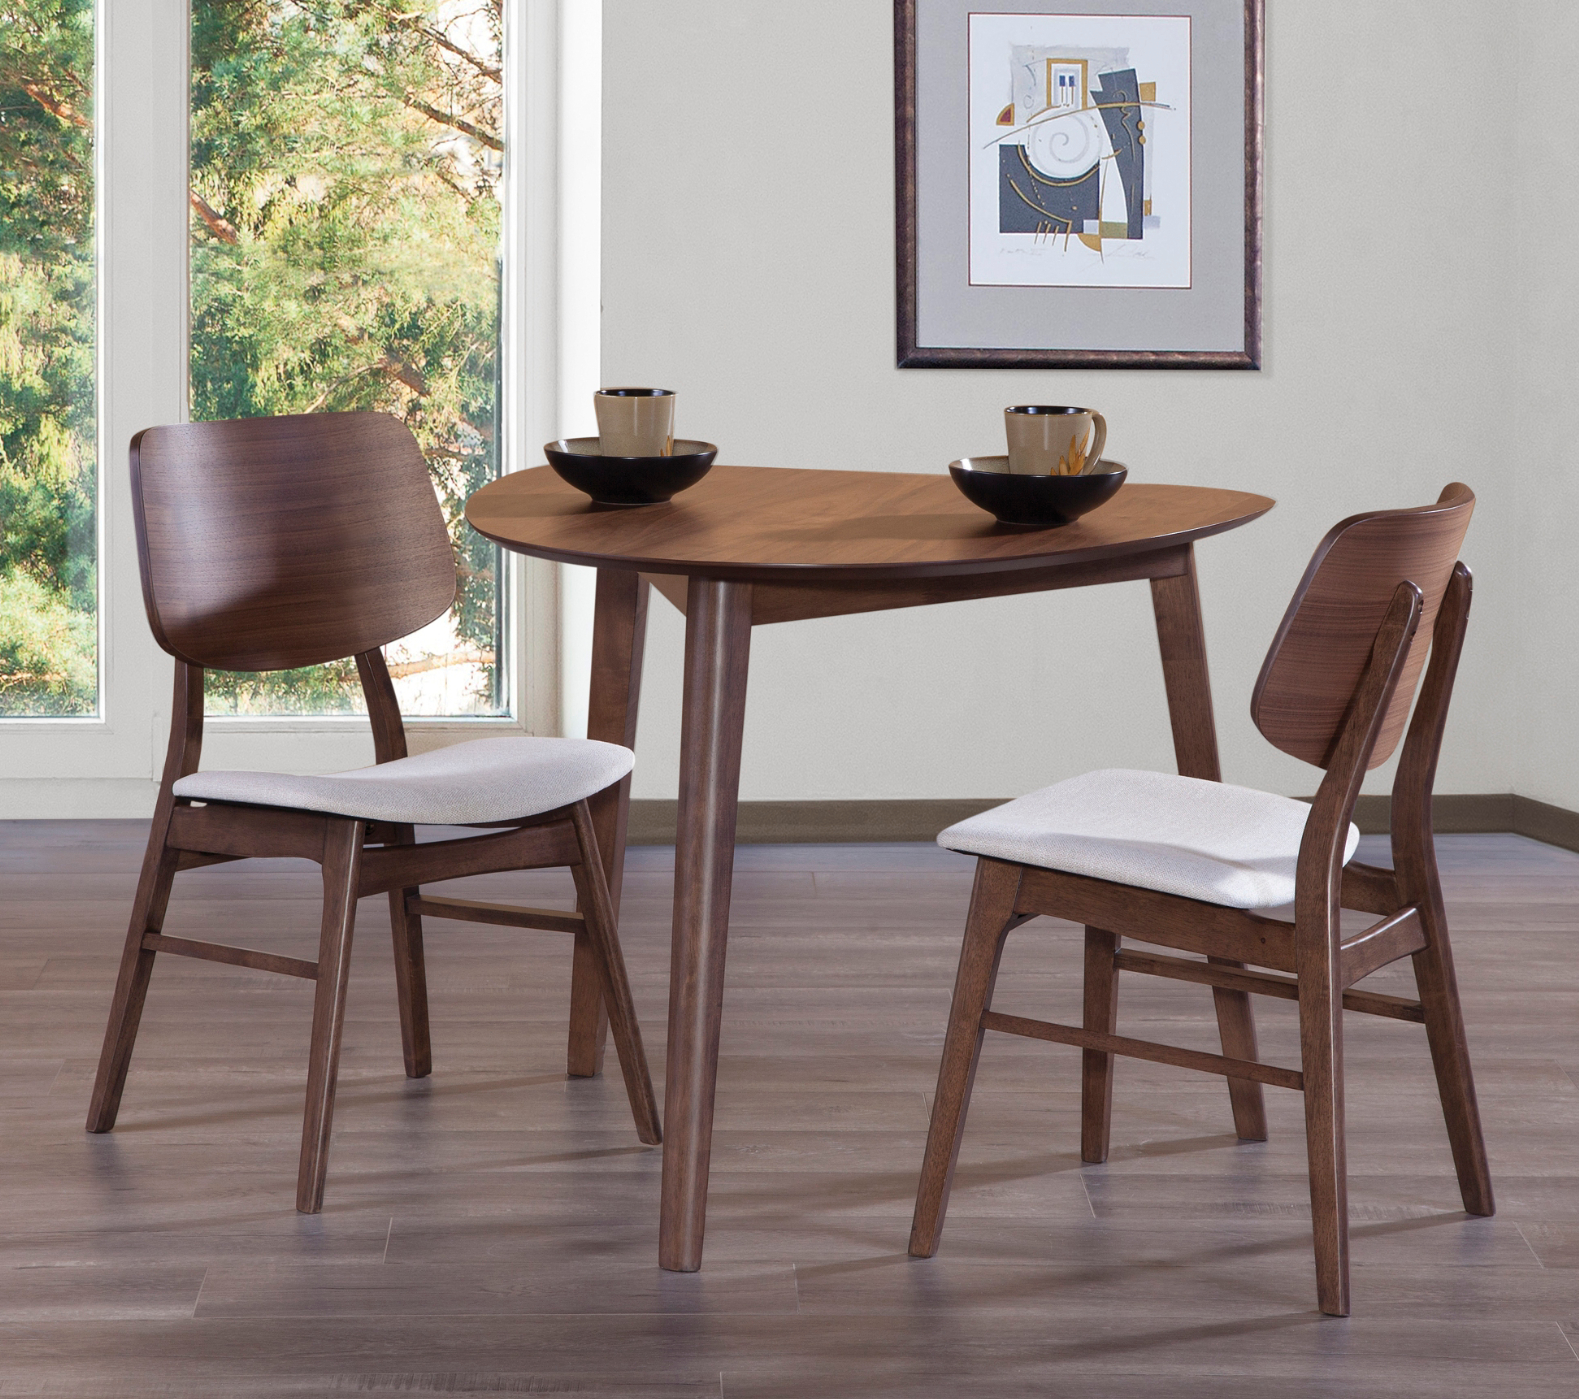 Perfect Dining Set For Small Spaces Shabby Chic Dining Room Corner Dining Set Corner Dining Table